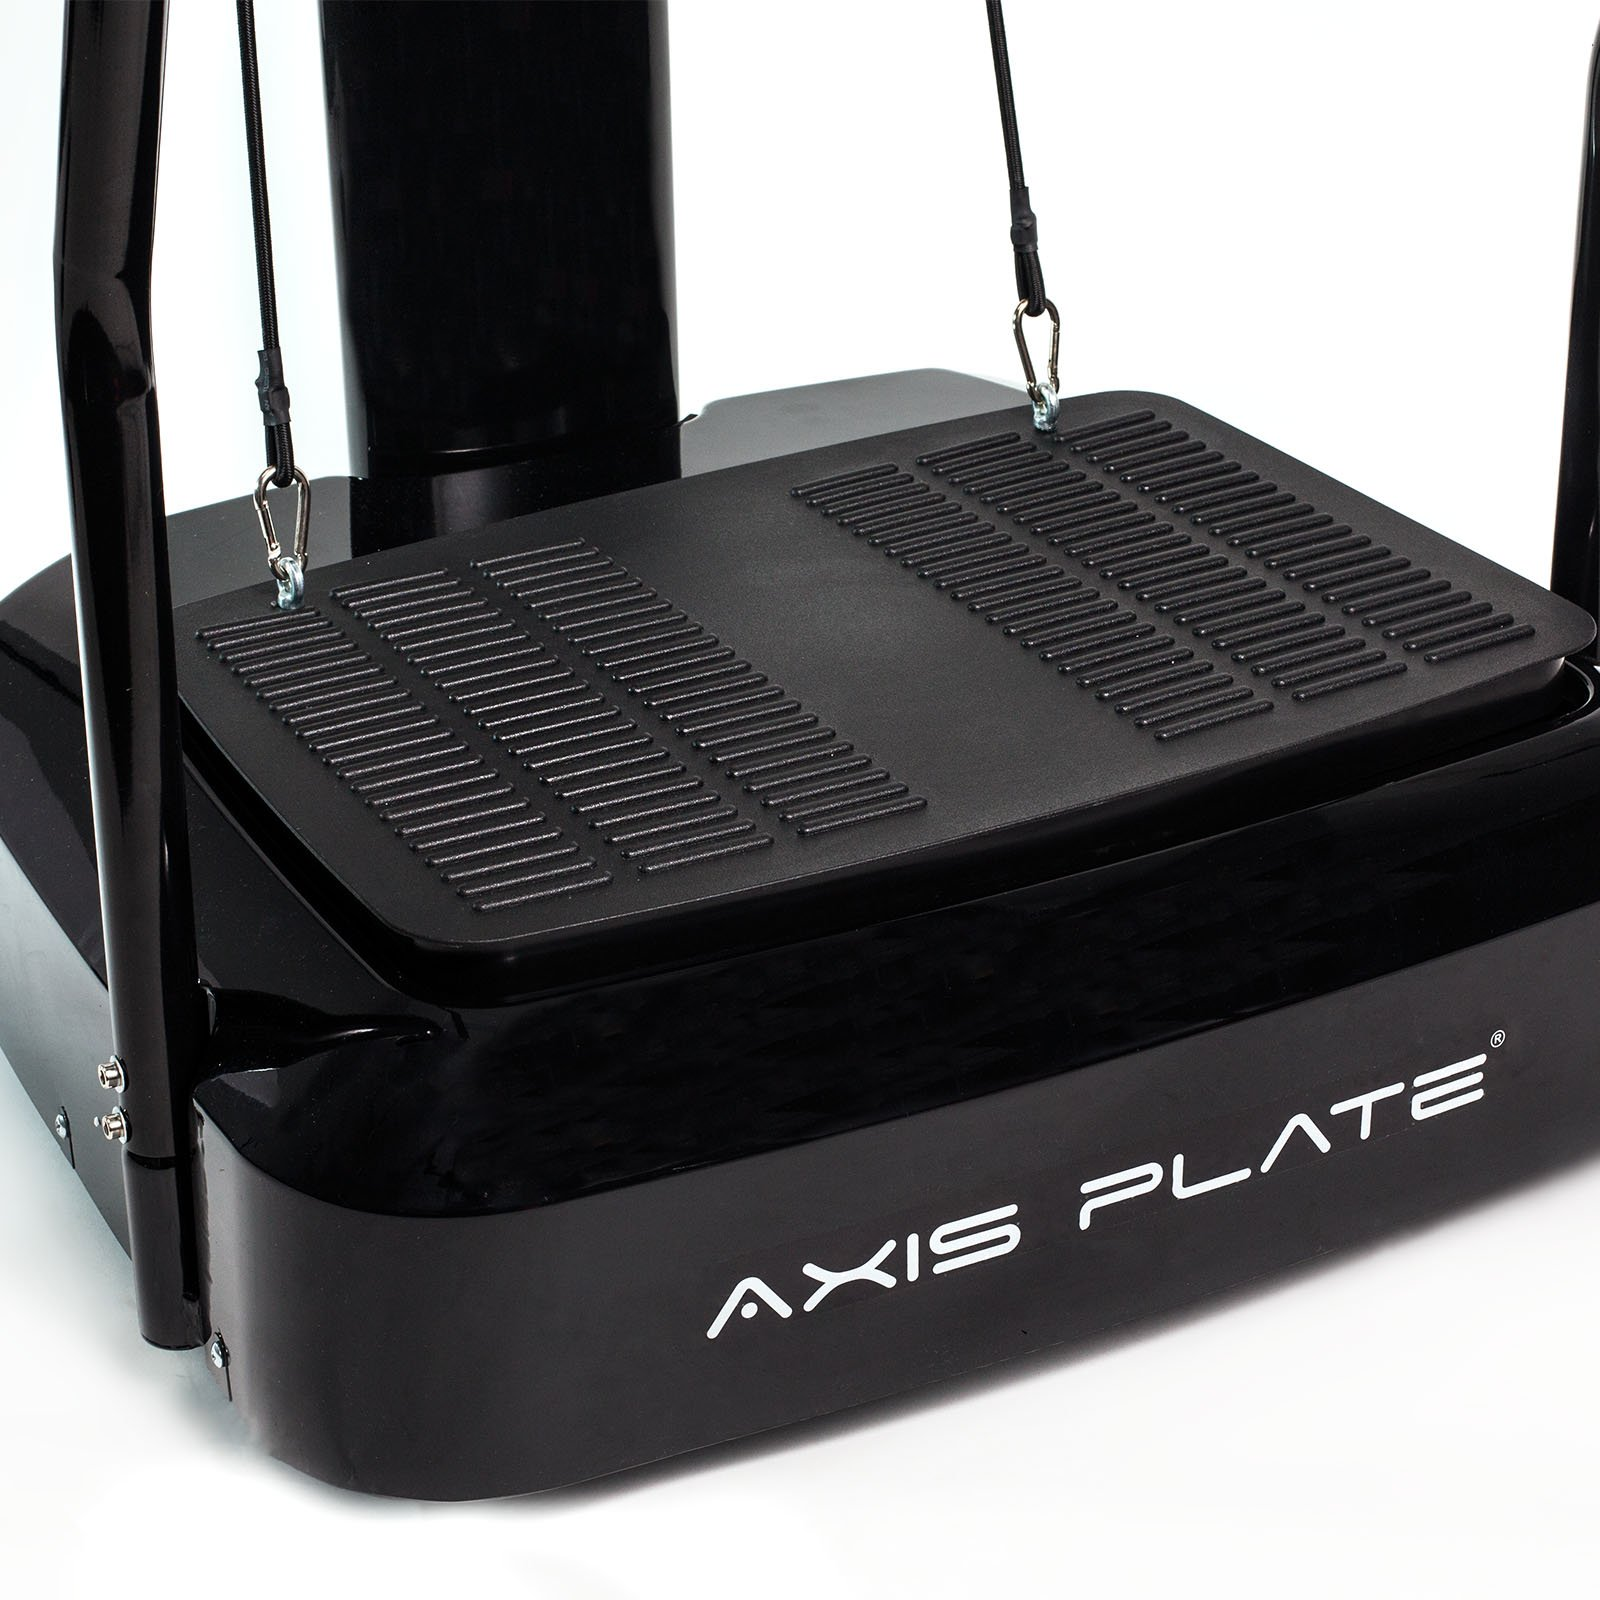 Axis-Plate Whole Body Vibration Platform Training and Exercise Fitness Machine by Axis-Plate (Image #5)